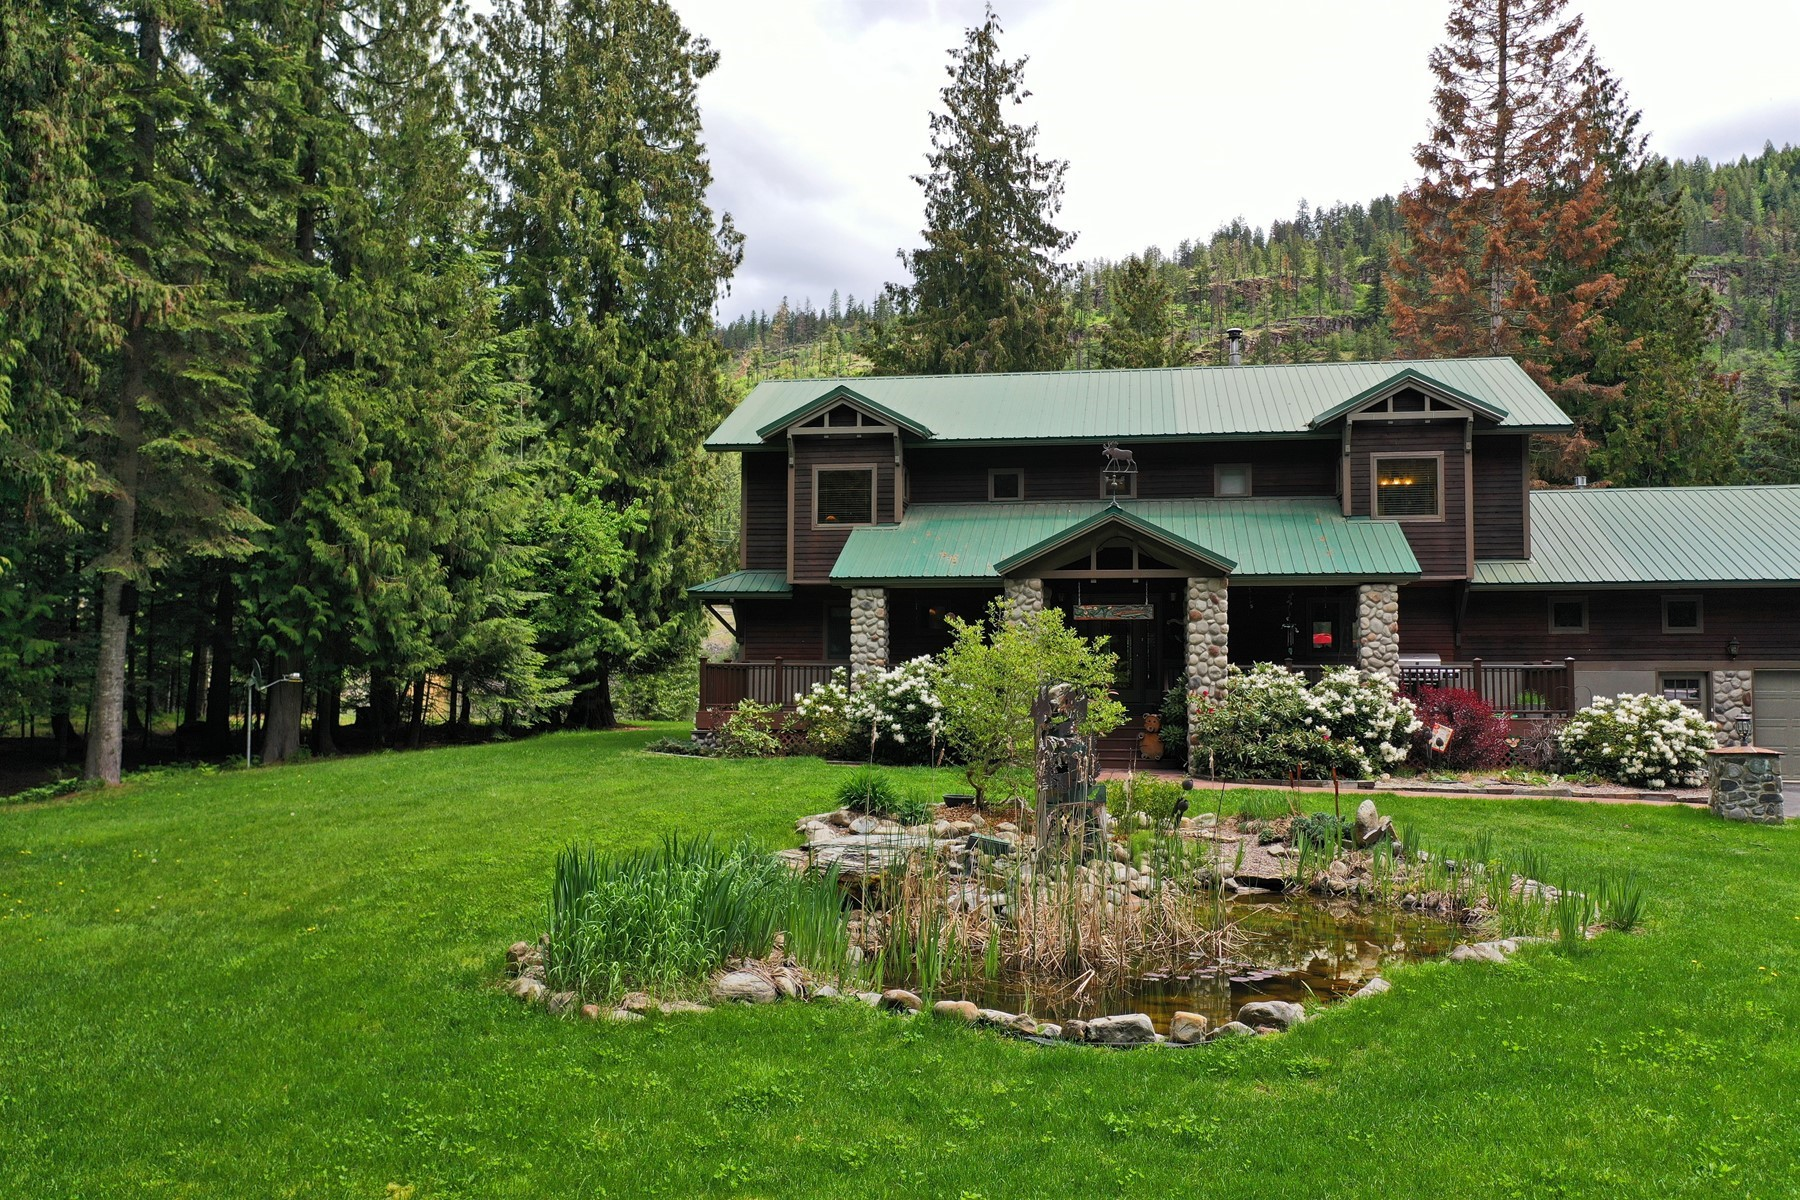 Single Family Homes for Active at Clark Fork River Sanctuary 469 N River Lake Drive Clark Fork, Idaho 83811 United States